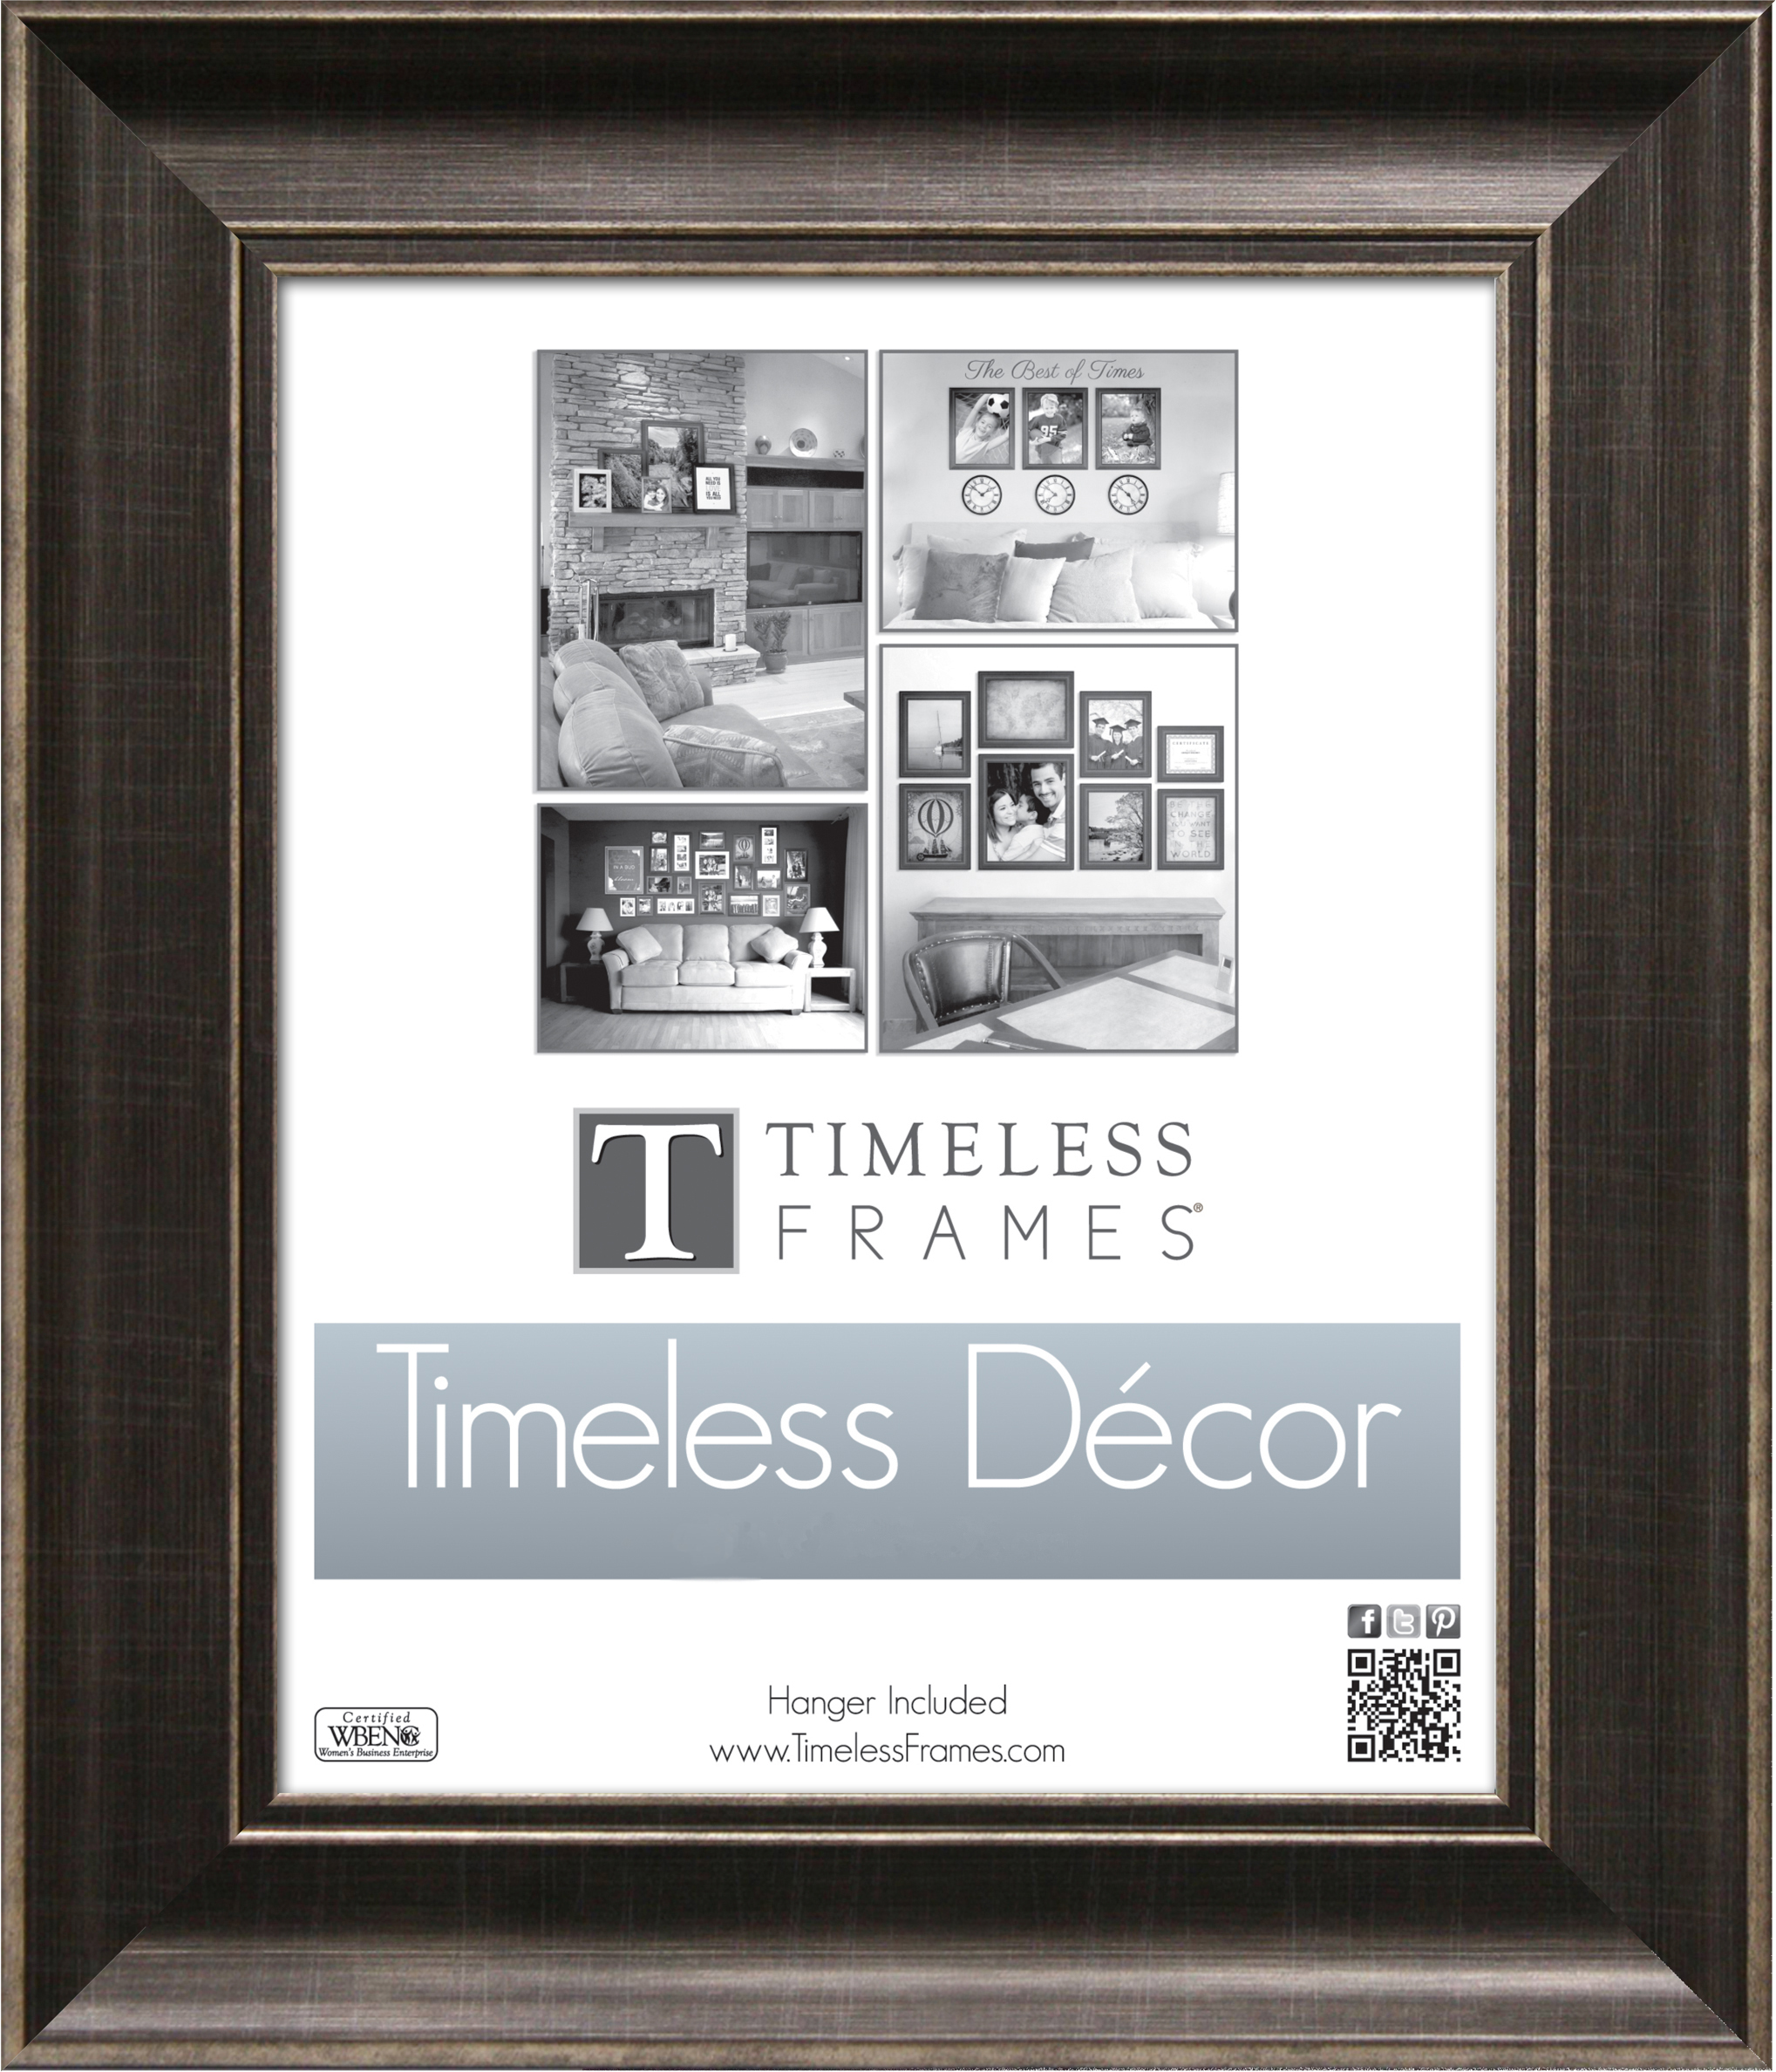 View - Diana Pewter 8x10 - Wall | Timeless Frames